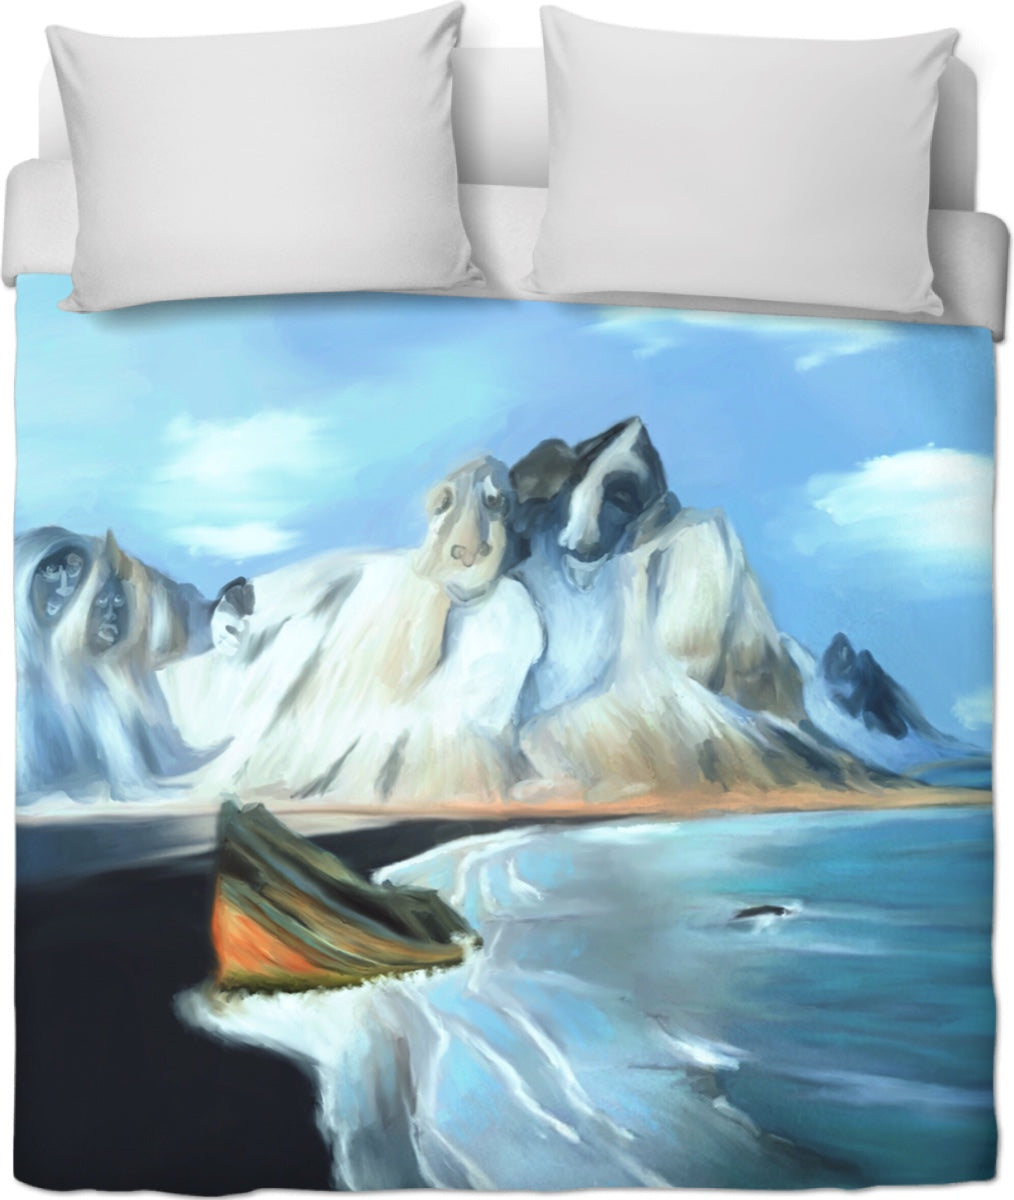 Duvet cover Abstract Artic